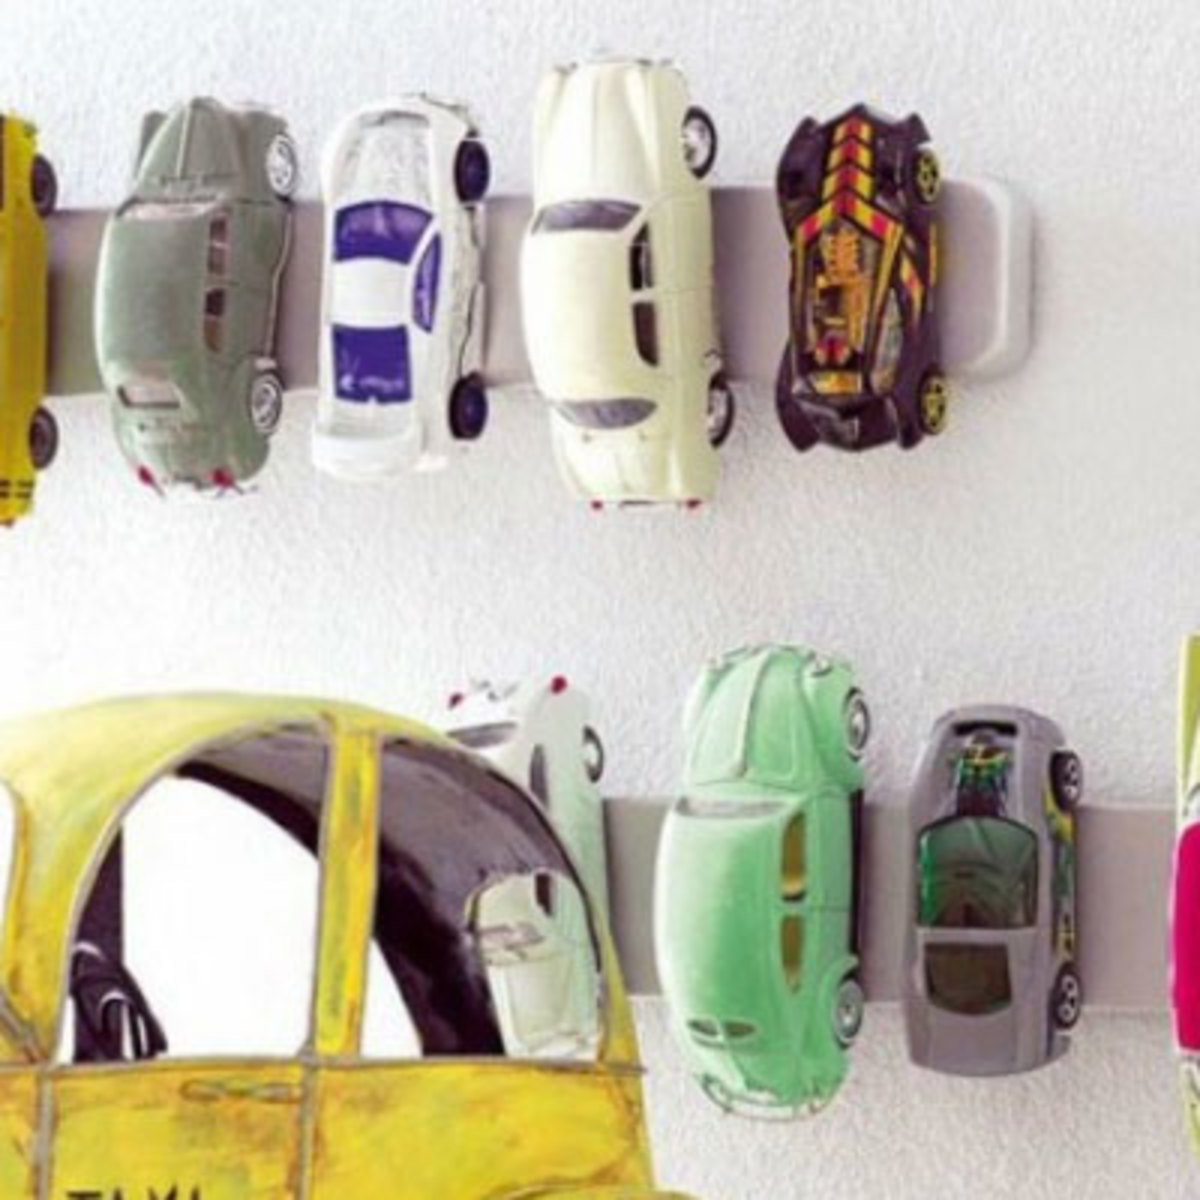 Magnetic Wall Strips for Toy Cars   Easy Organization Ideas for the Home